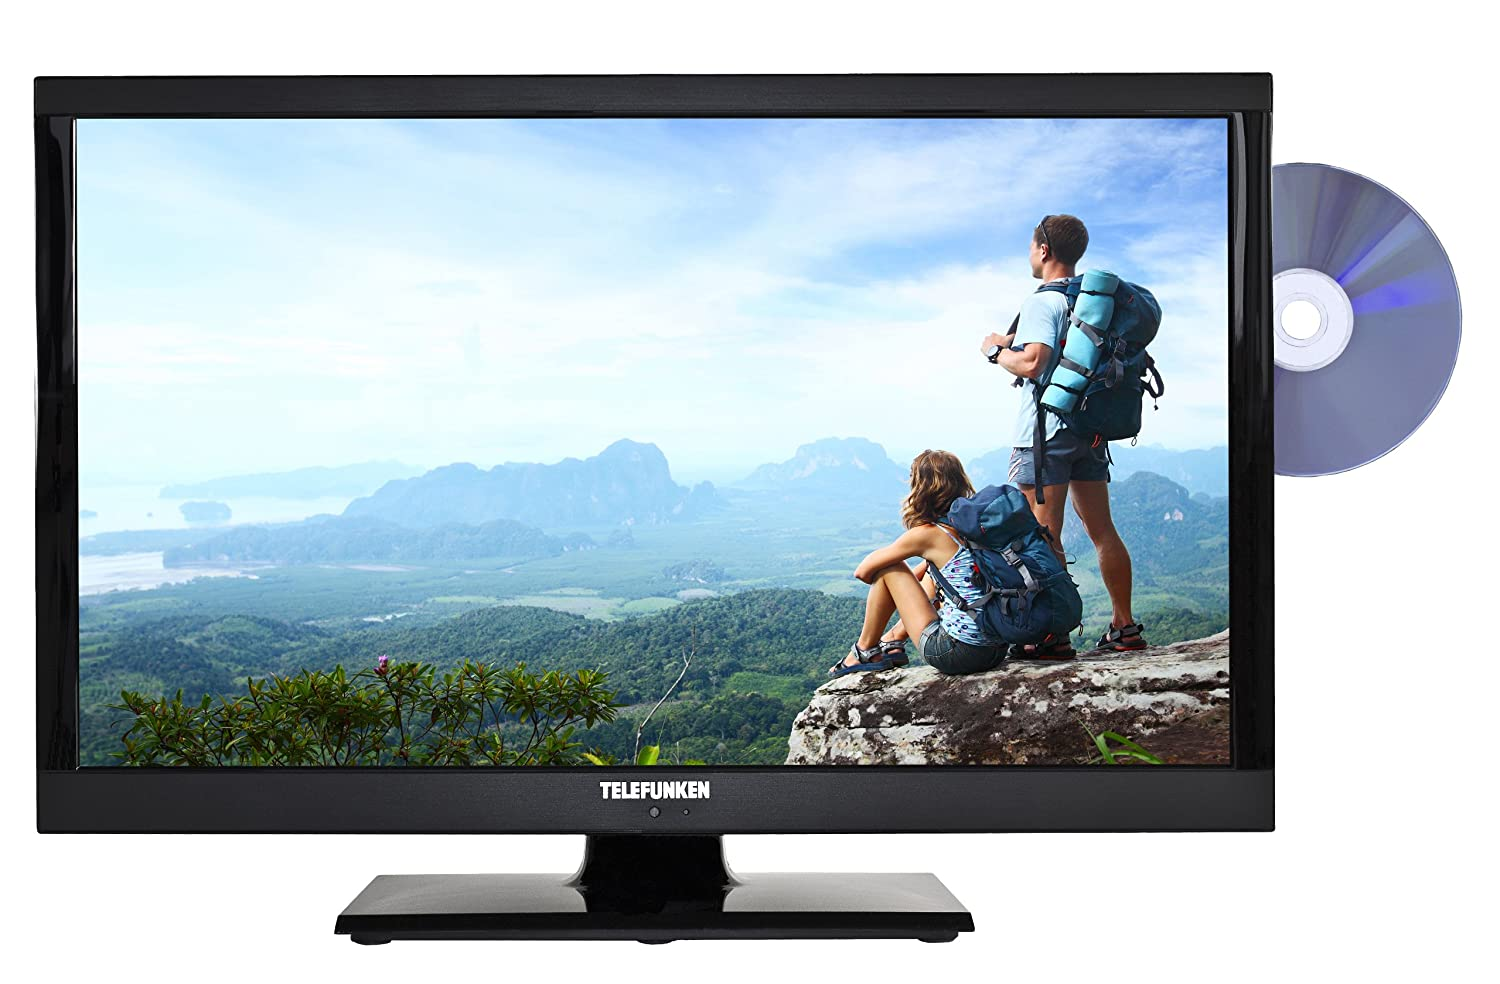 telefunken l24h185i3 lcd led fernseher tv dvd 24 zoll 61 cm hd dvb t c s2 ci ebay. Black Bedroom Furniture Sets. Home Design Ideas